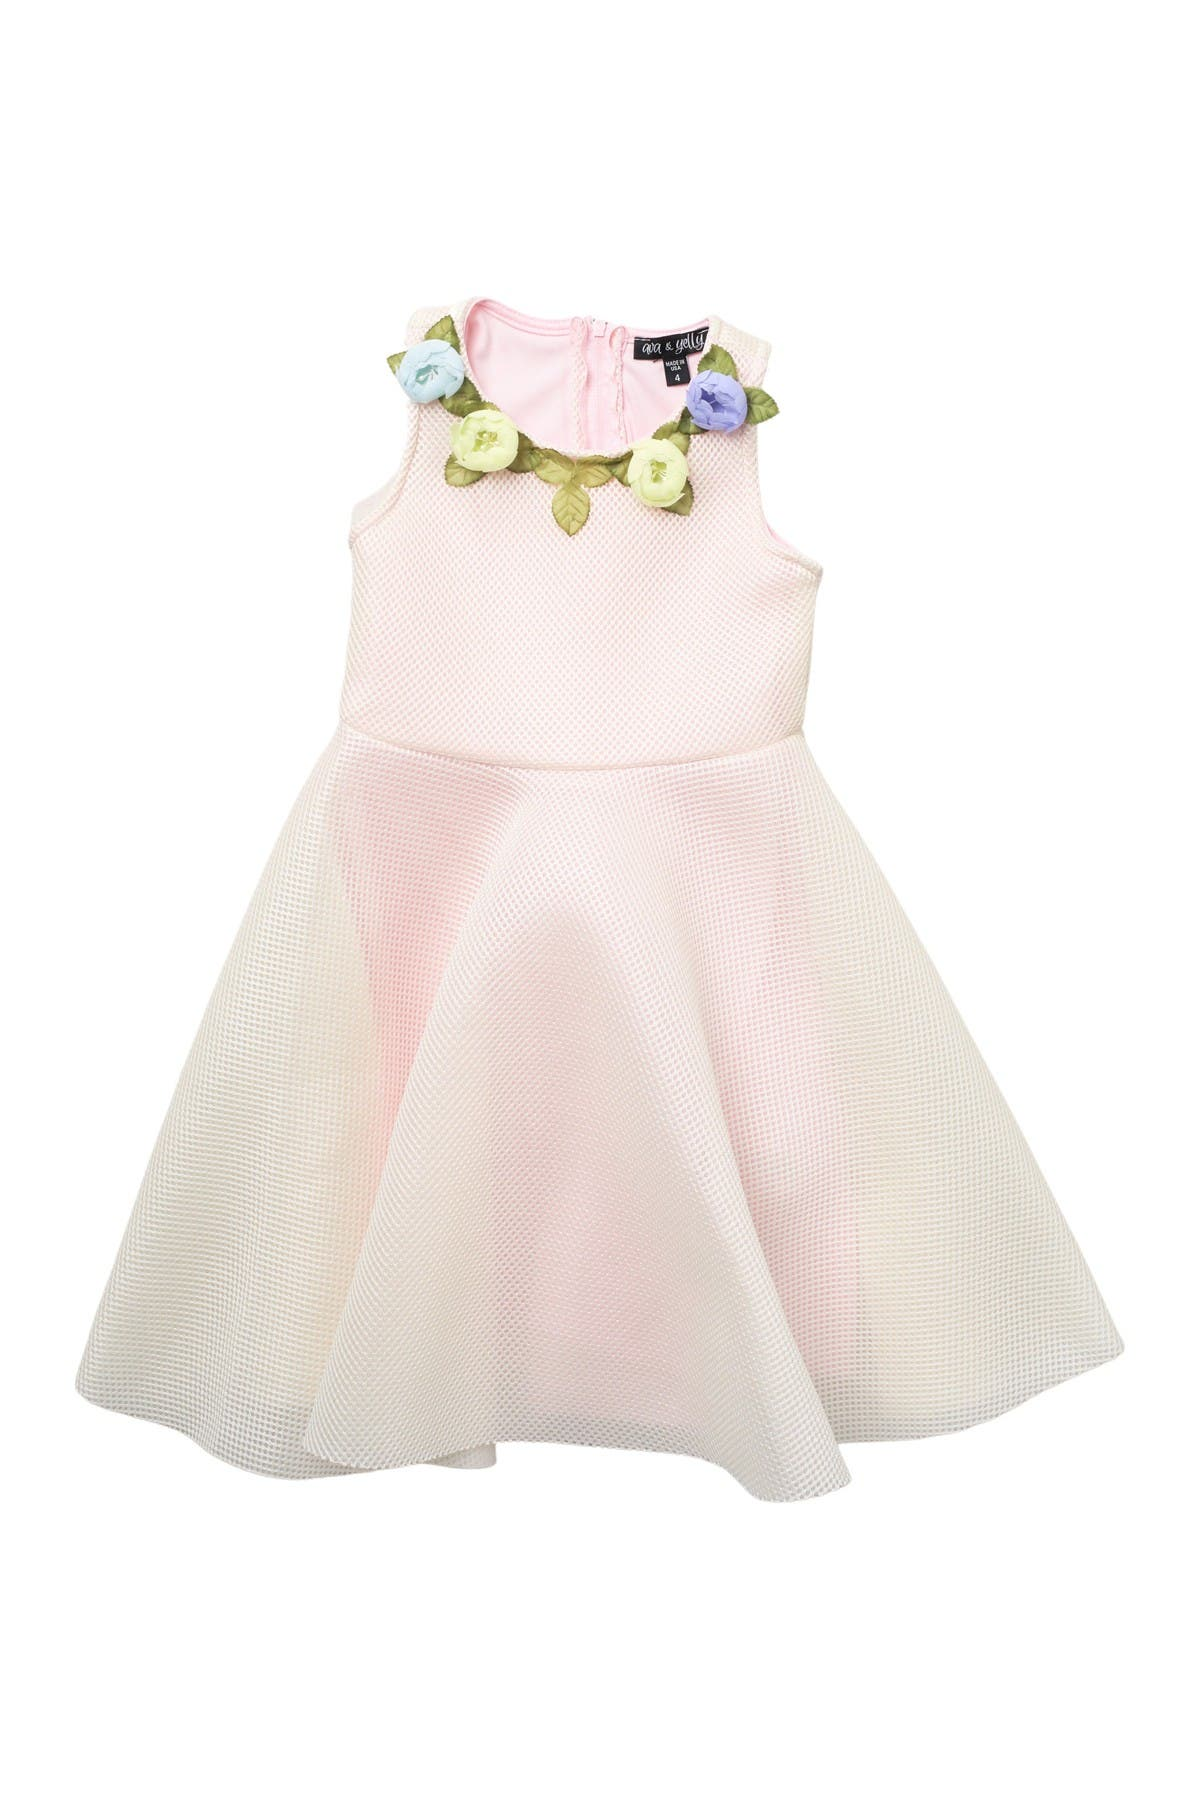 Image of AVA AND YELLY 3D Flowers Texture Skater Dress